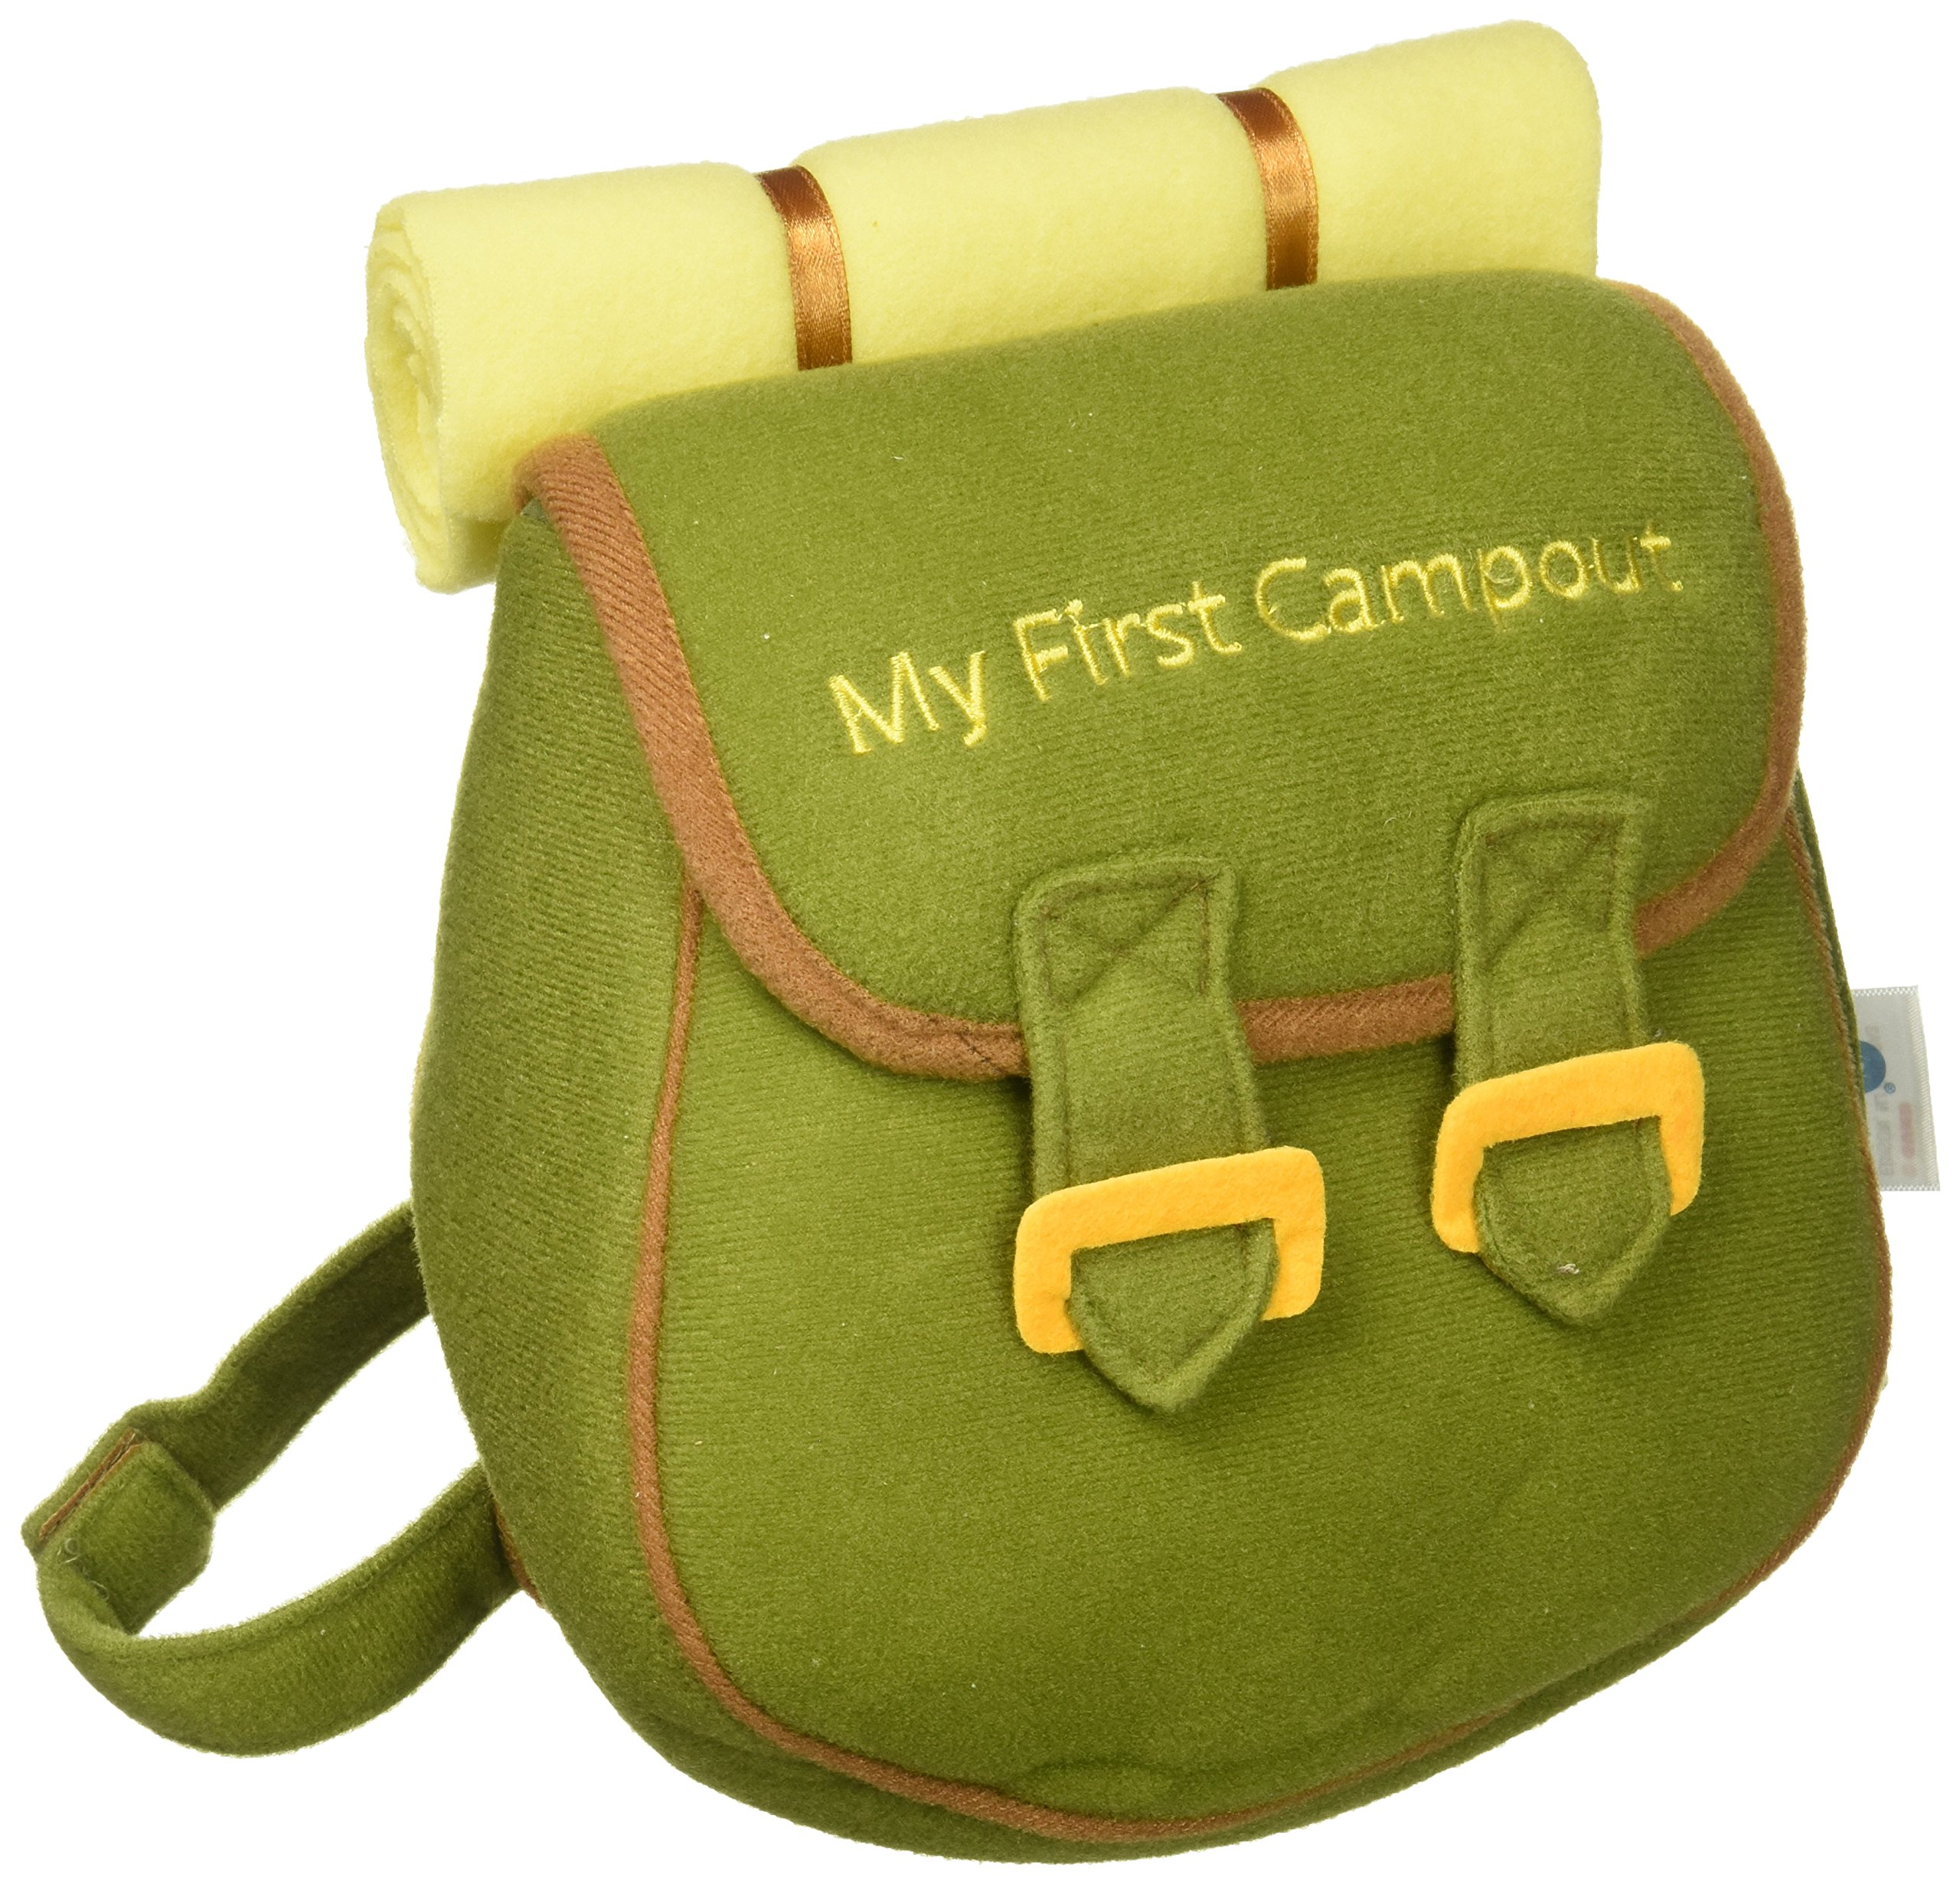 Amazon.com : Baby GUND My First Campout Stuffed Plush Playset : Baby